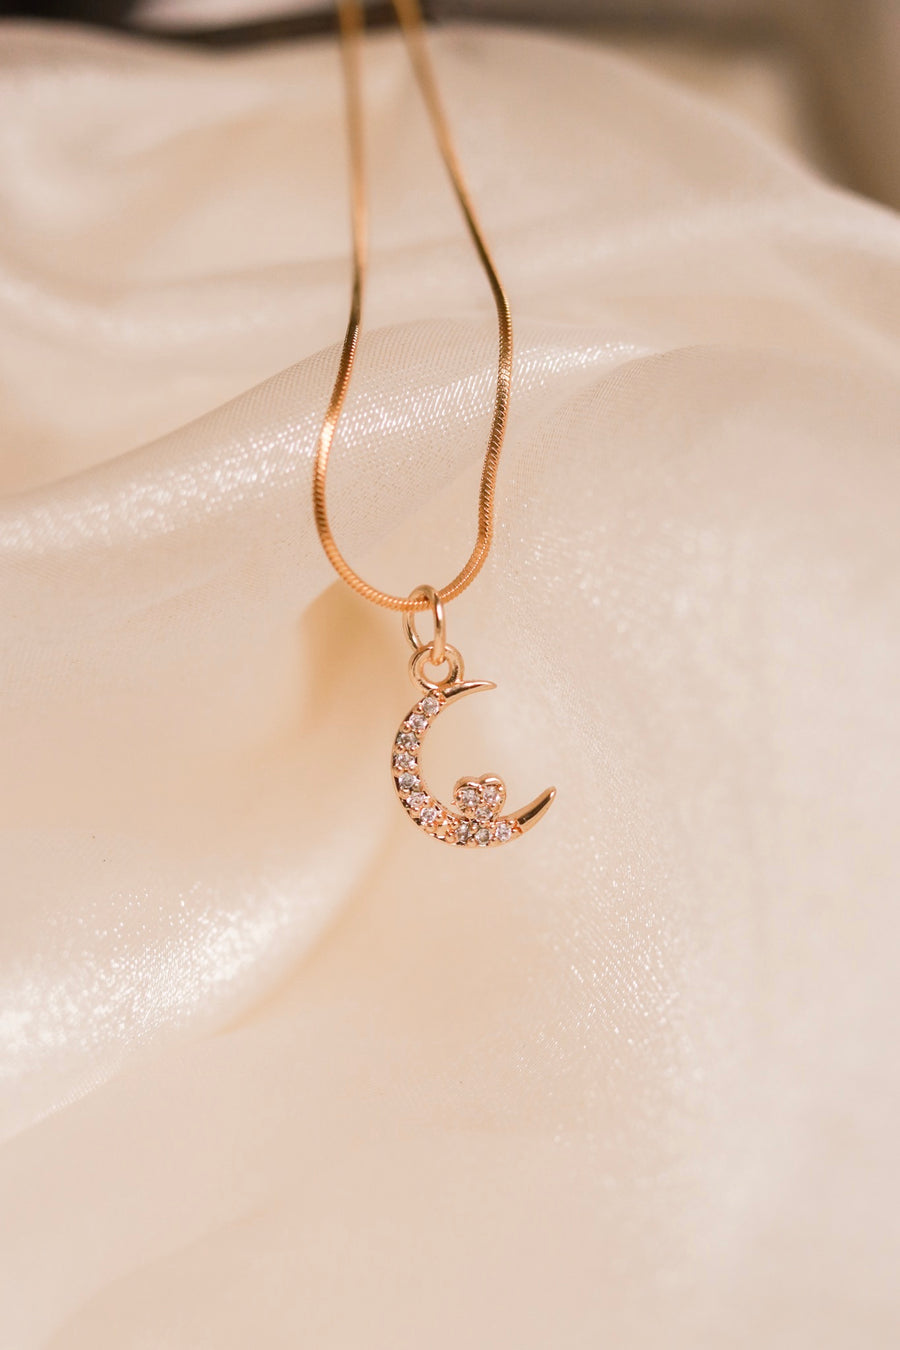 Dainty Moonheart Necklace